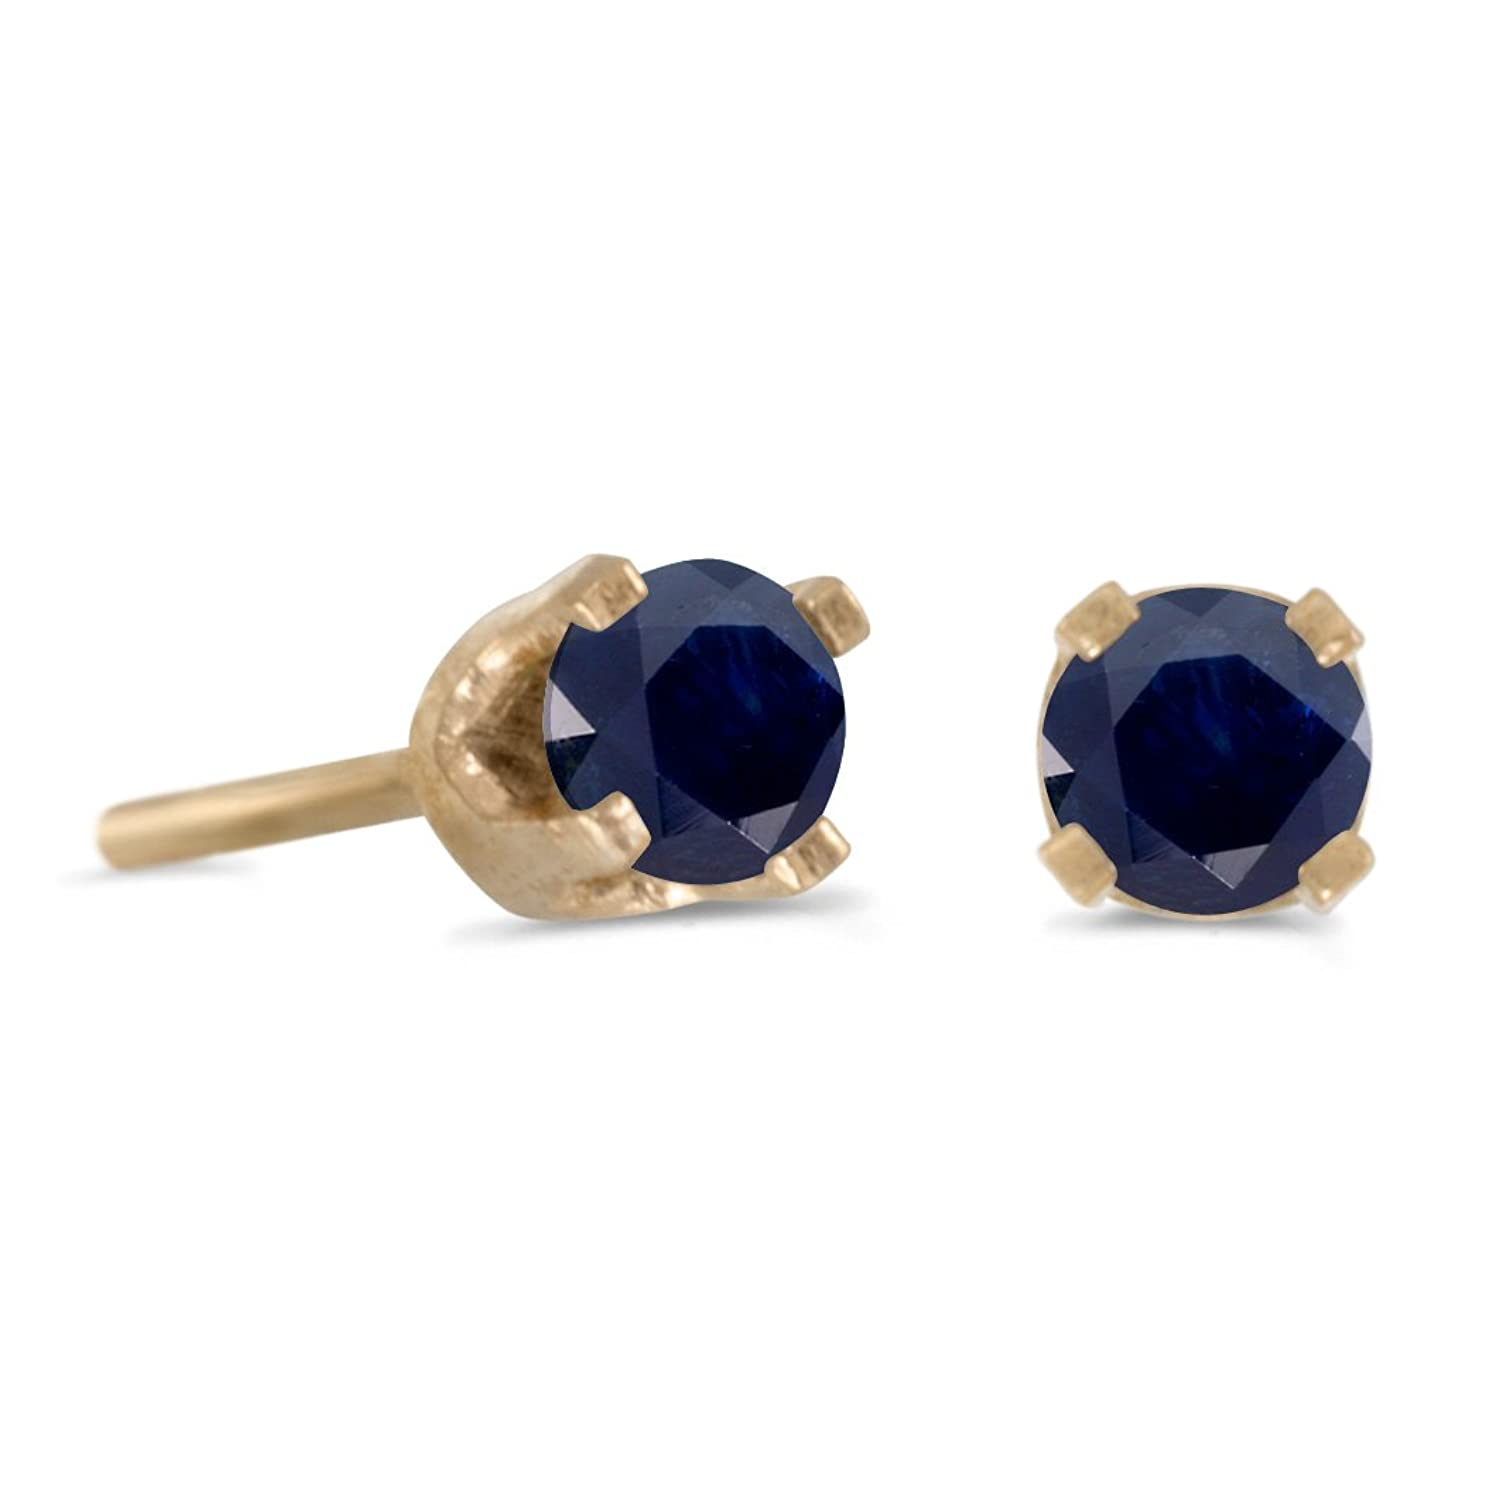 sapphire emerald and stem irini in full bloom products jewelry yellowsaph diamond white back yellow post earrings